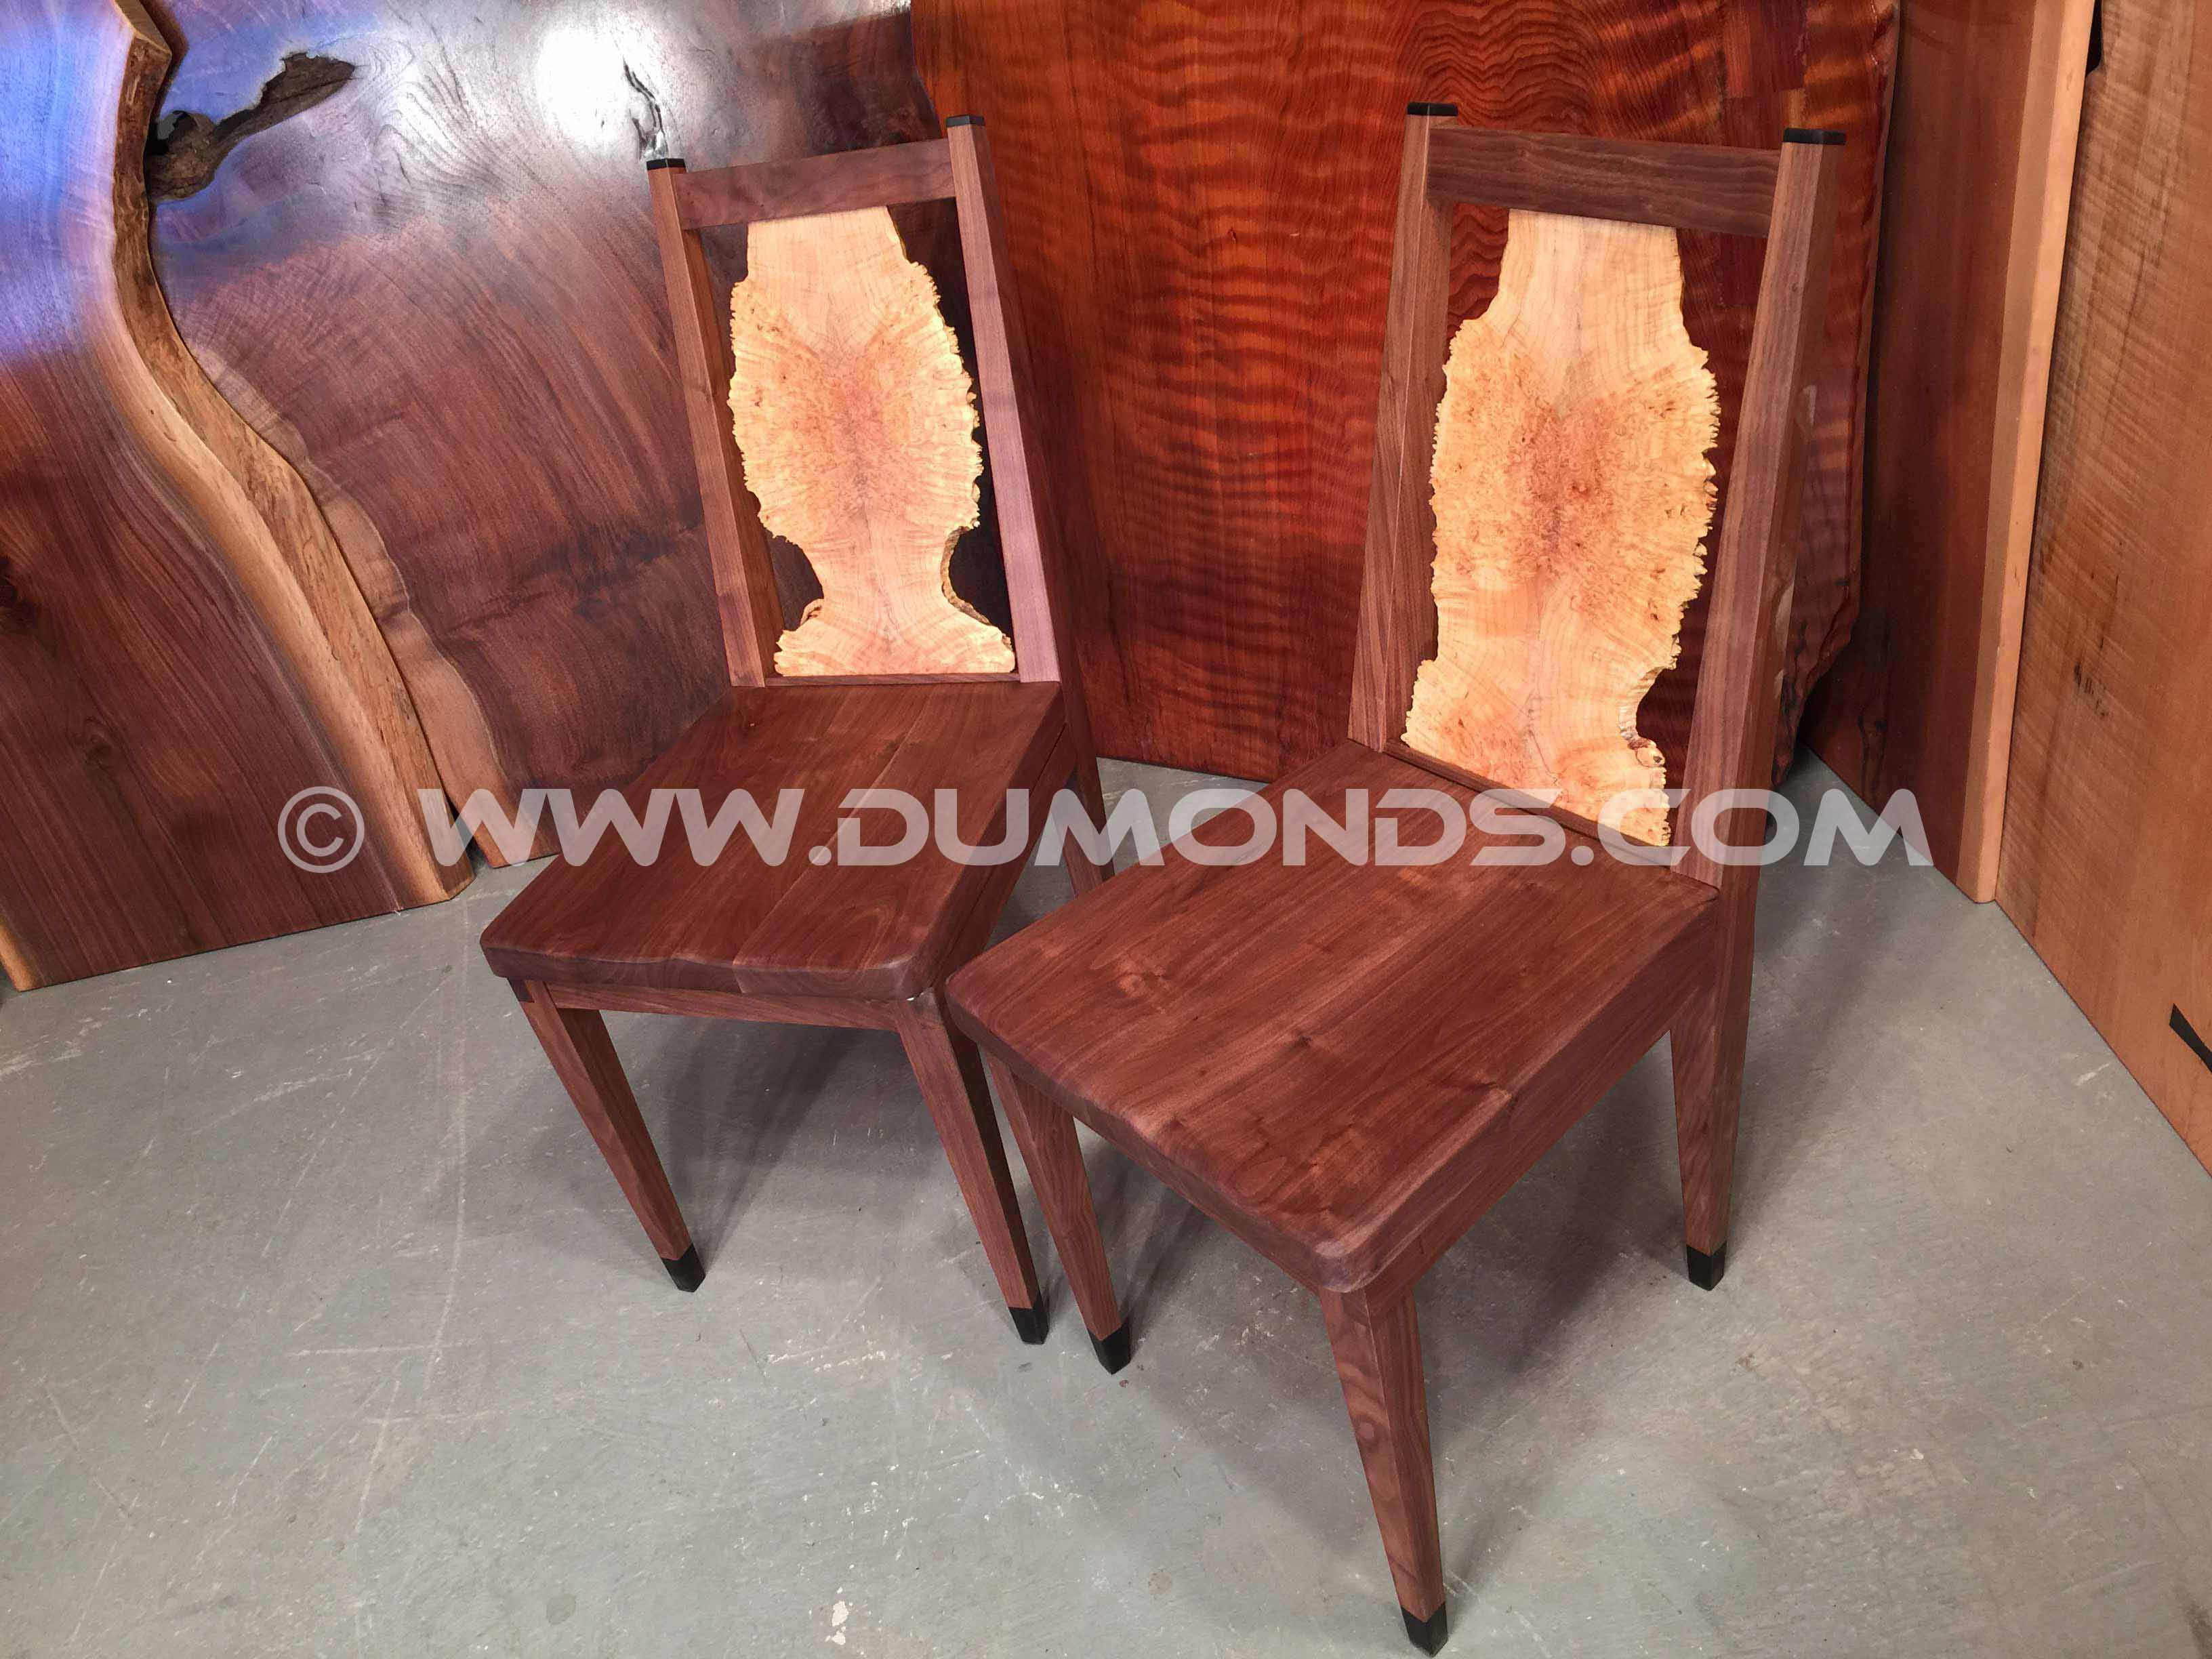 burled maple chairs